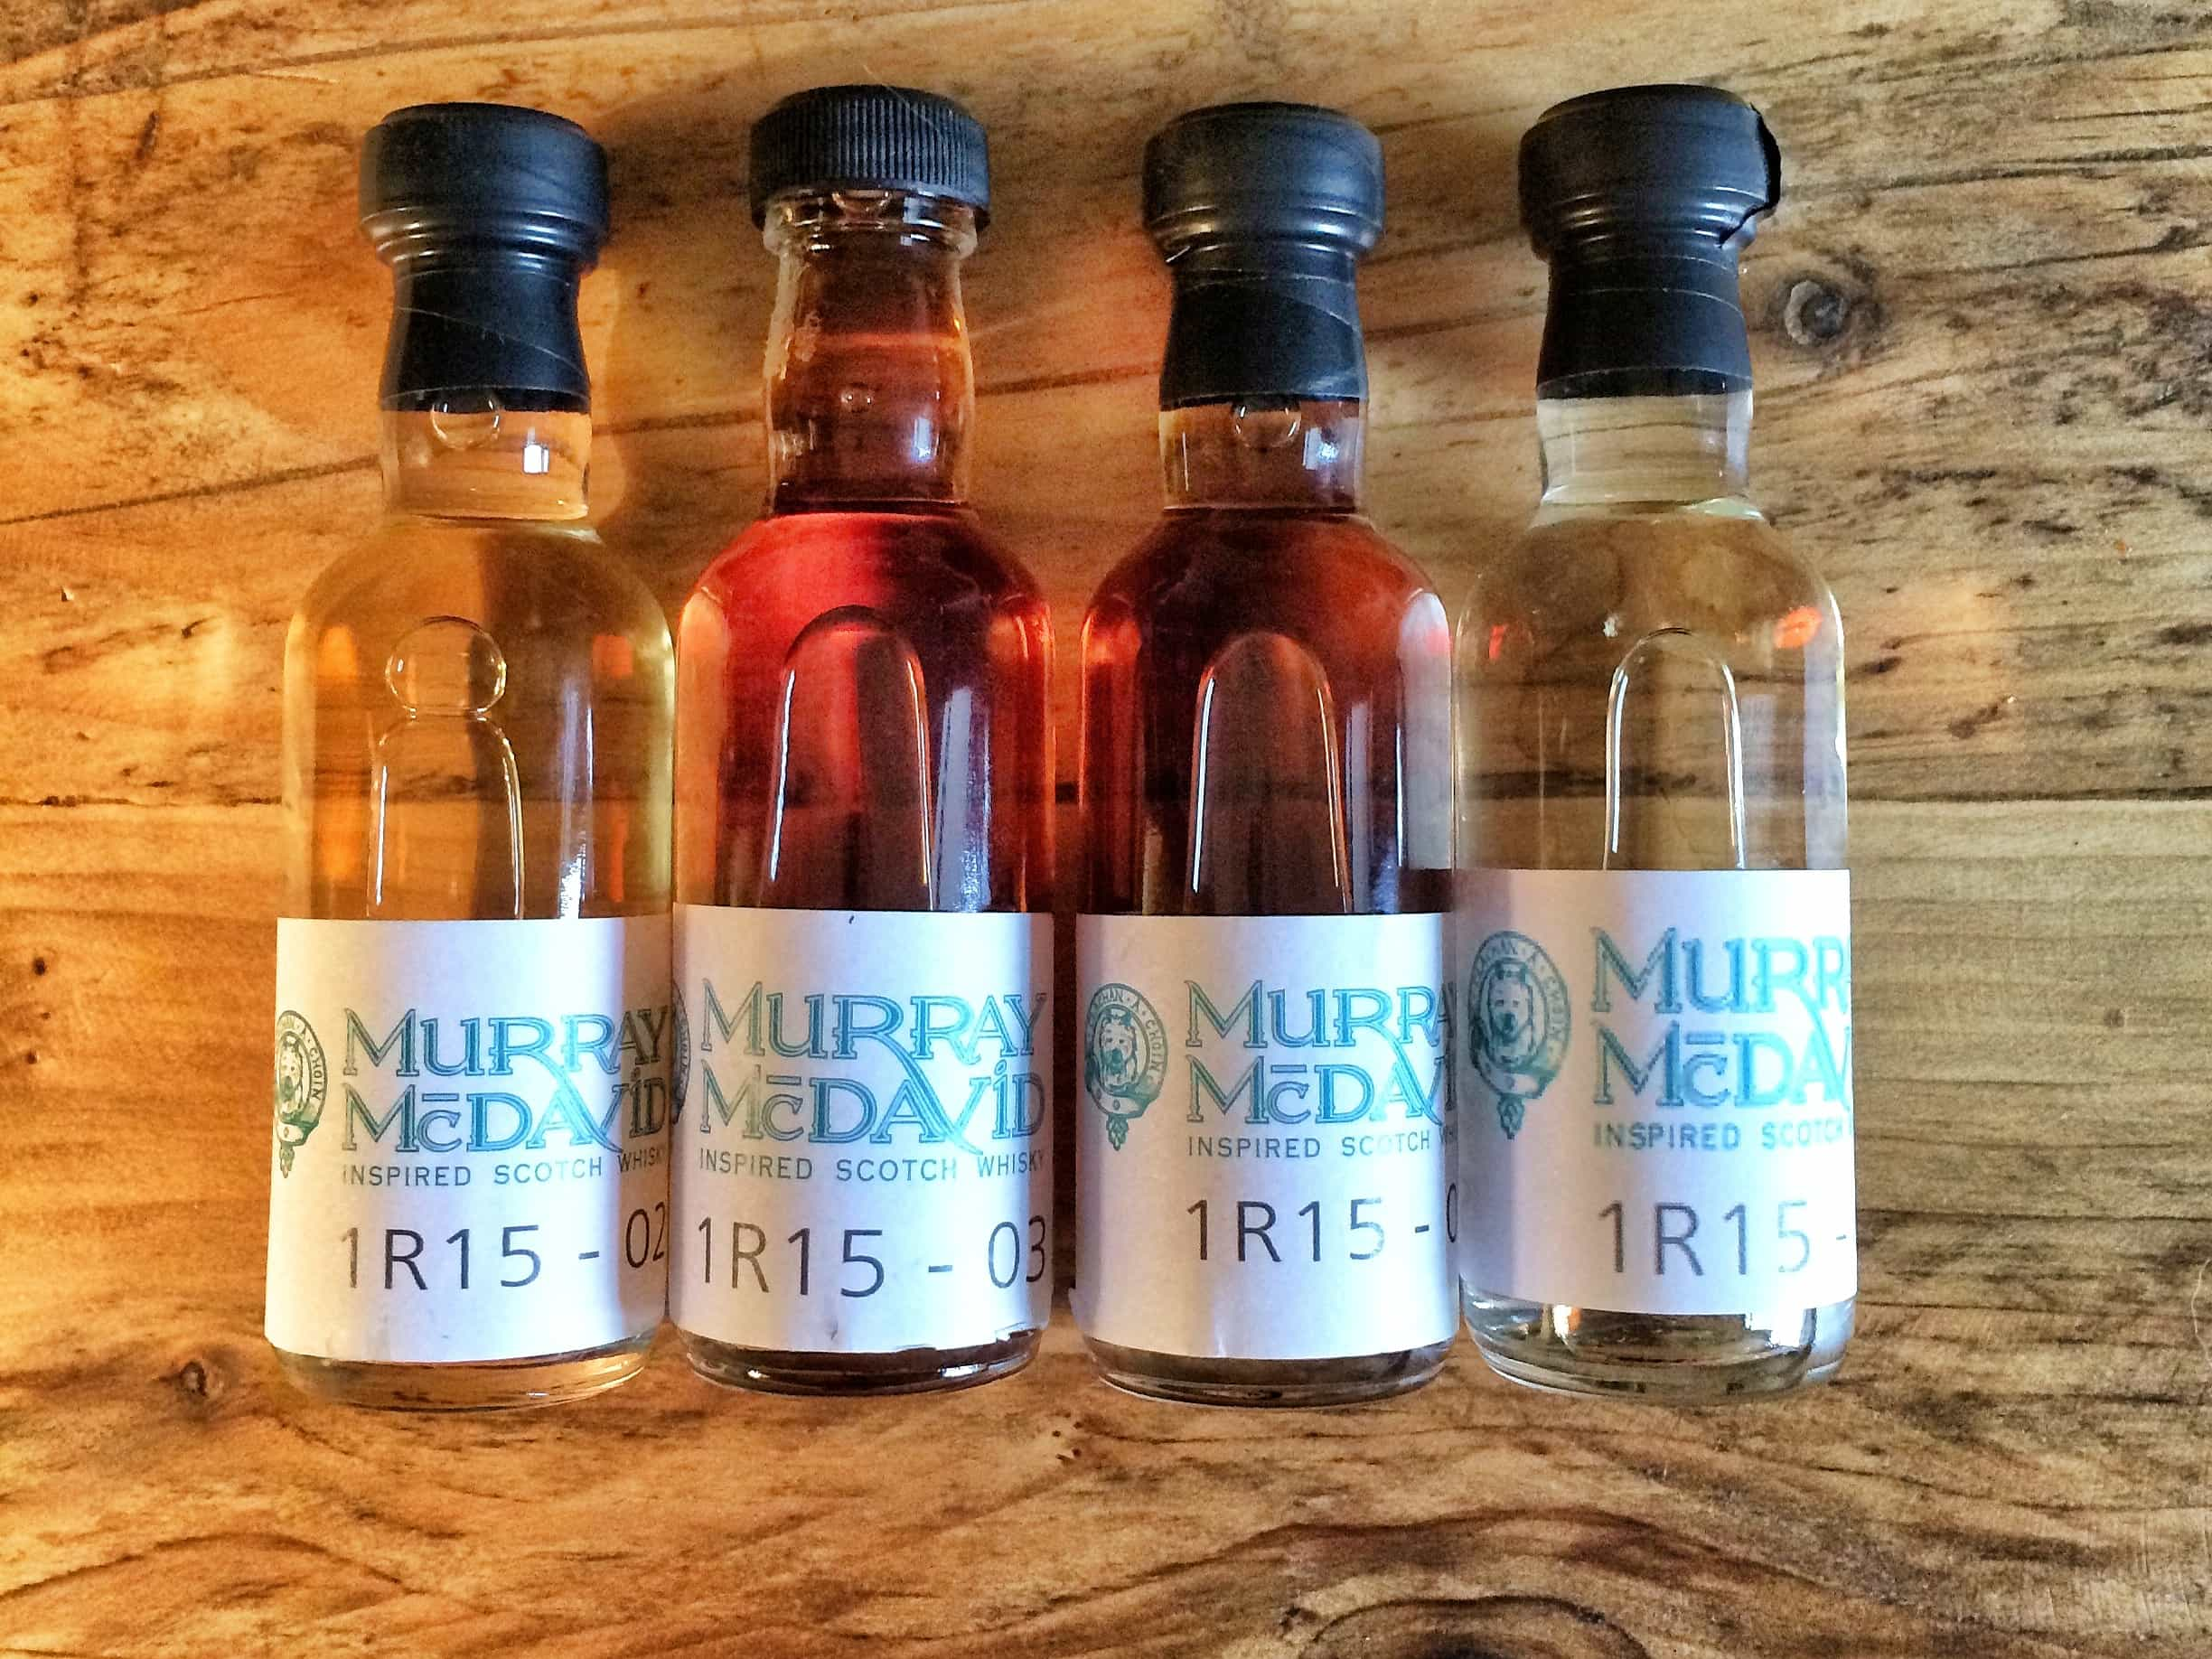 Murray McDavid single casks samples